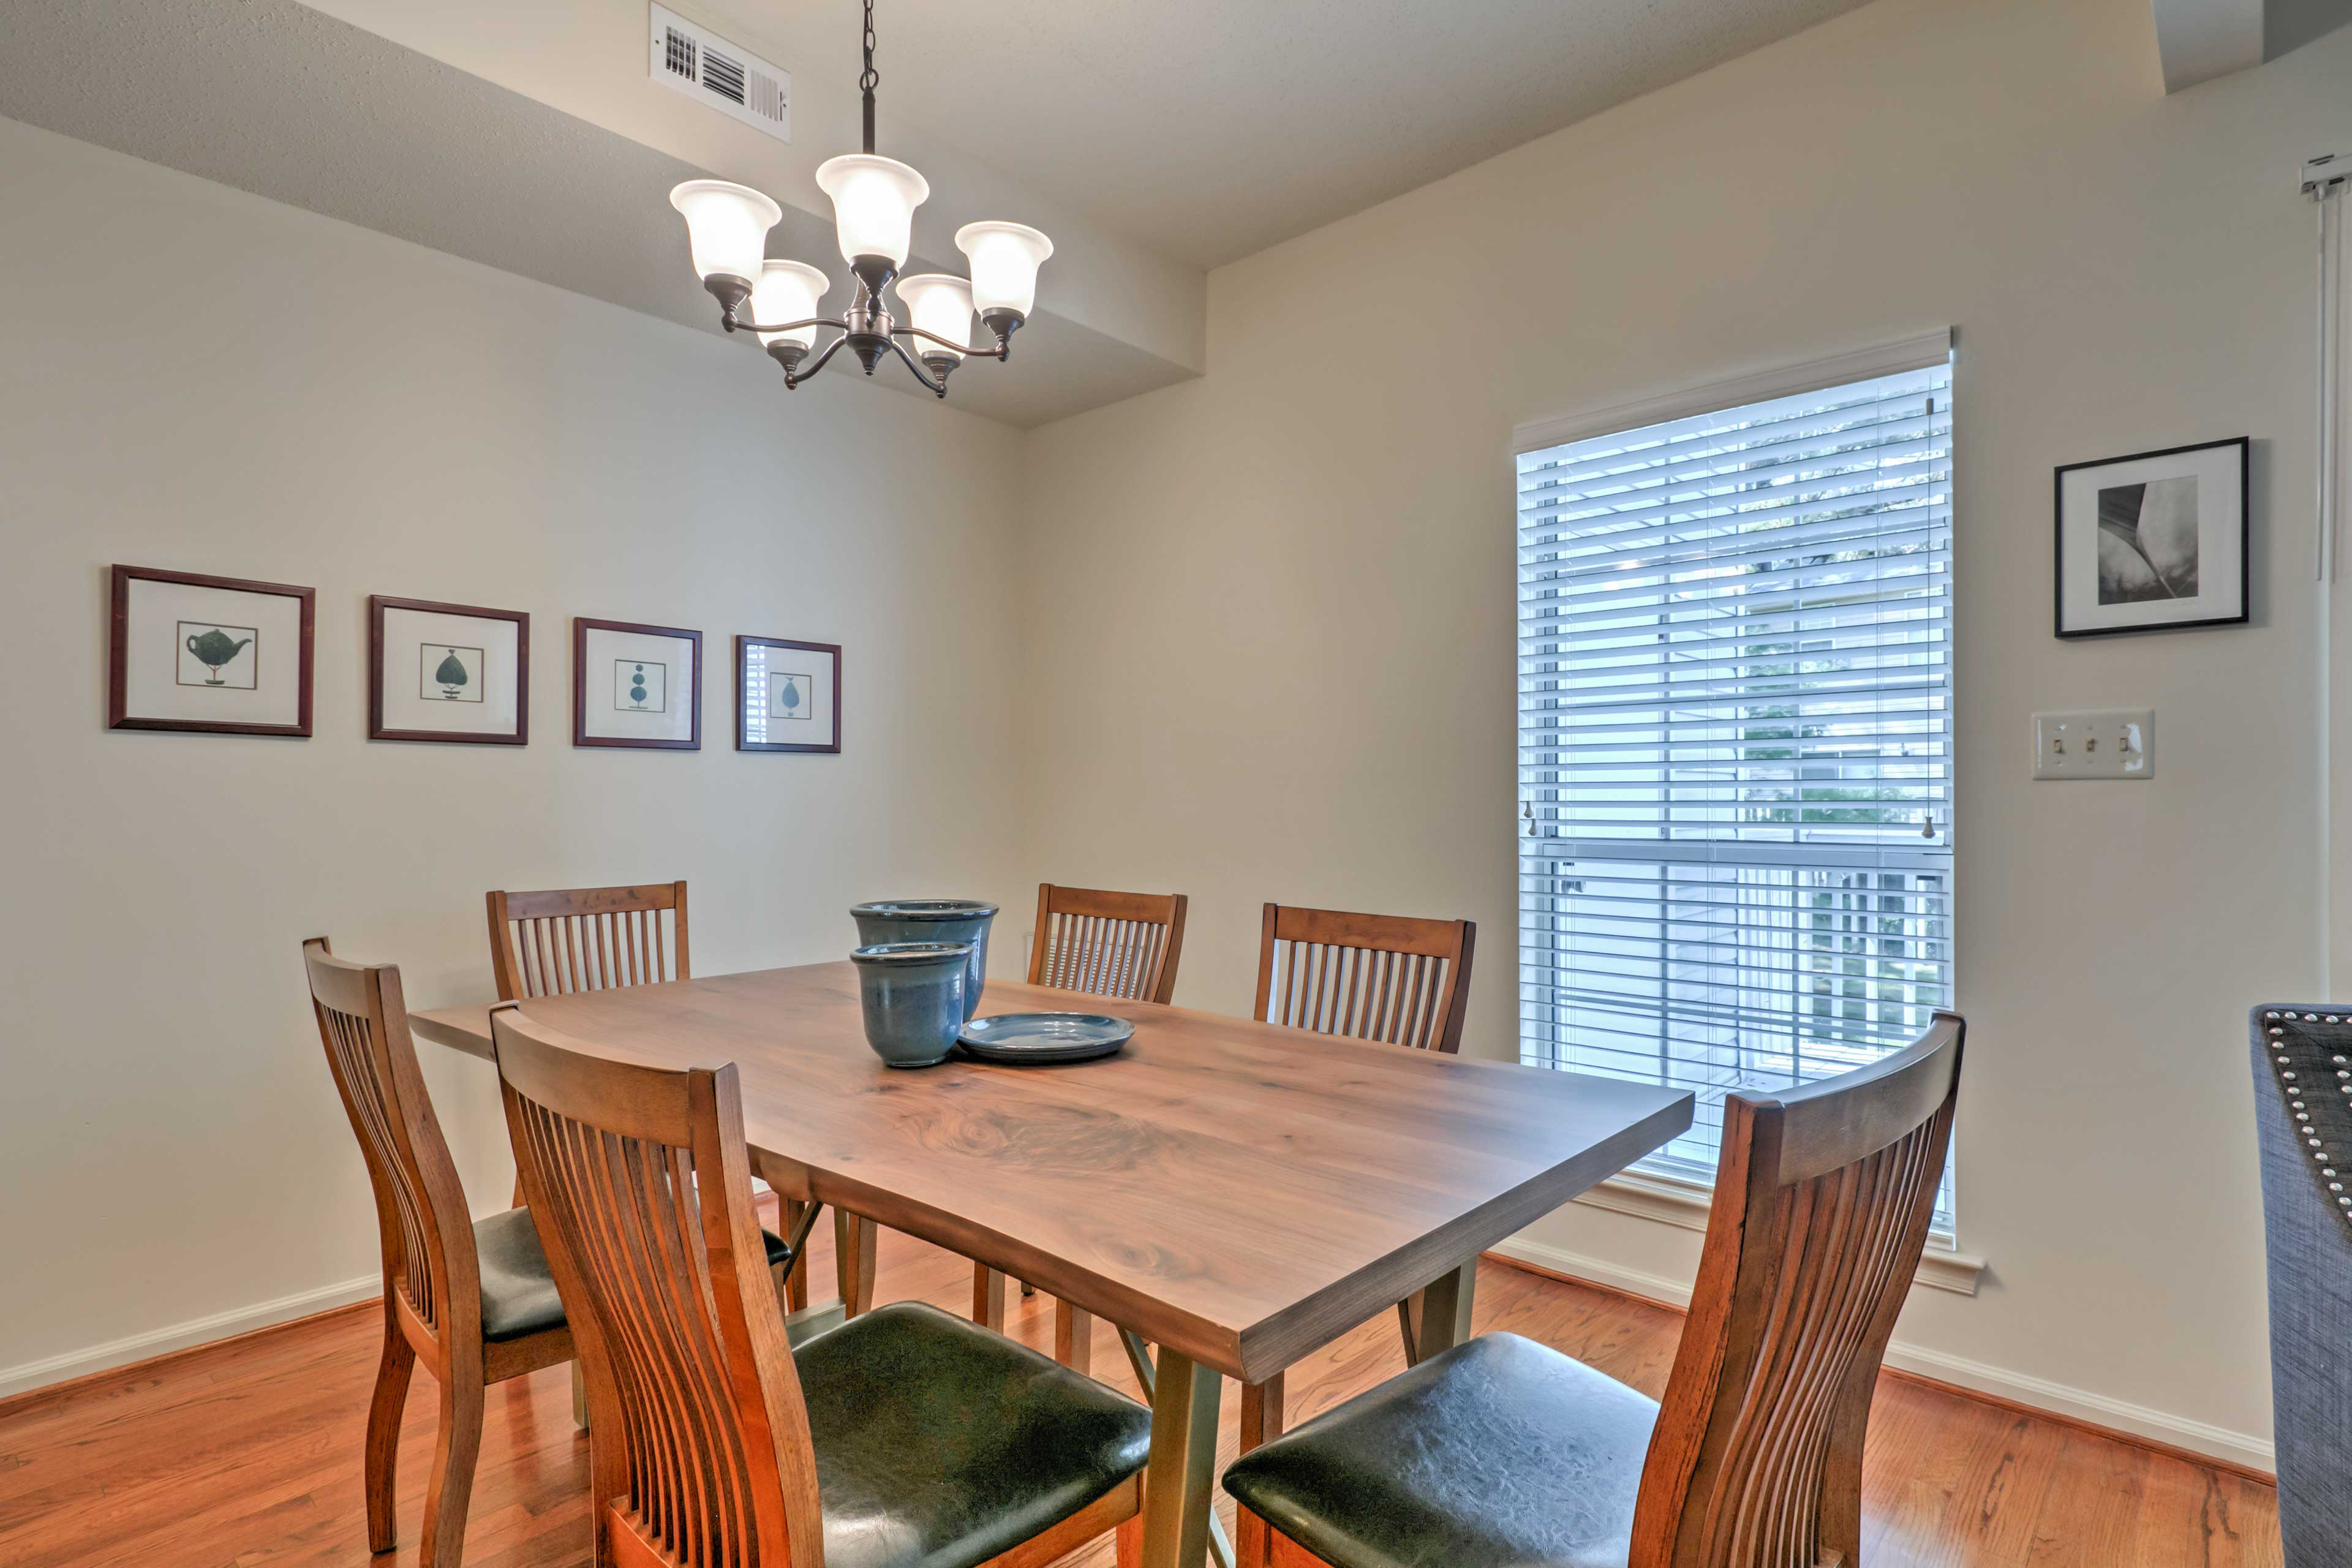 Enjoy quality time together at the dining table set for 6.